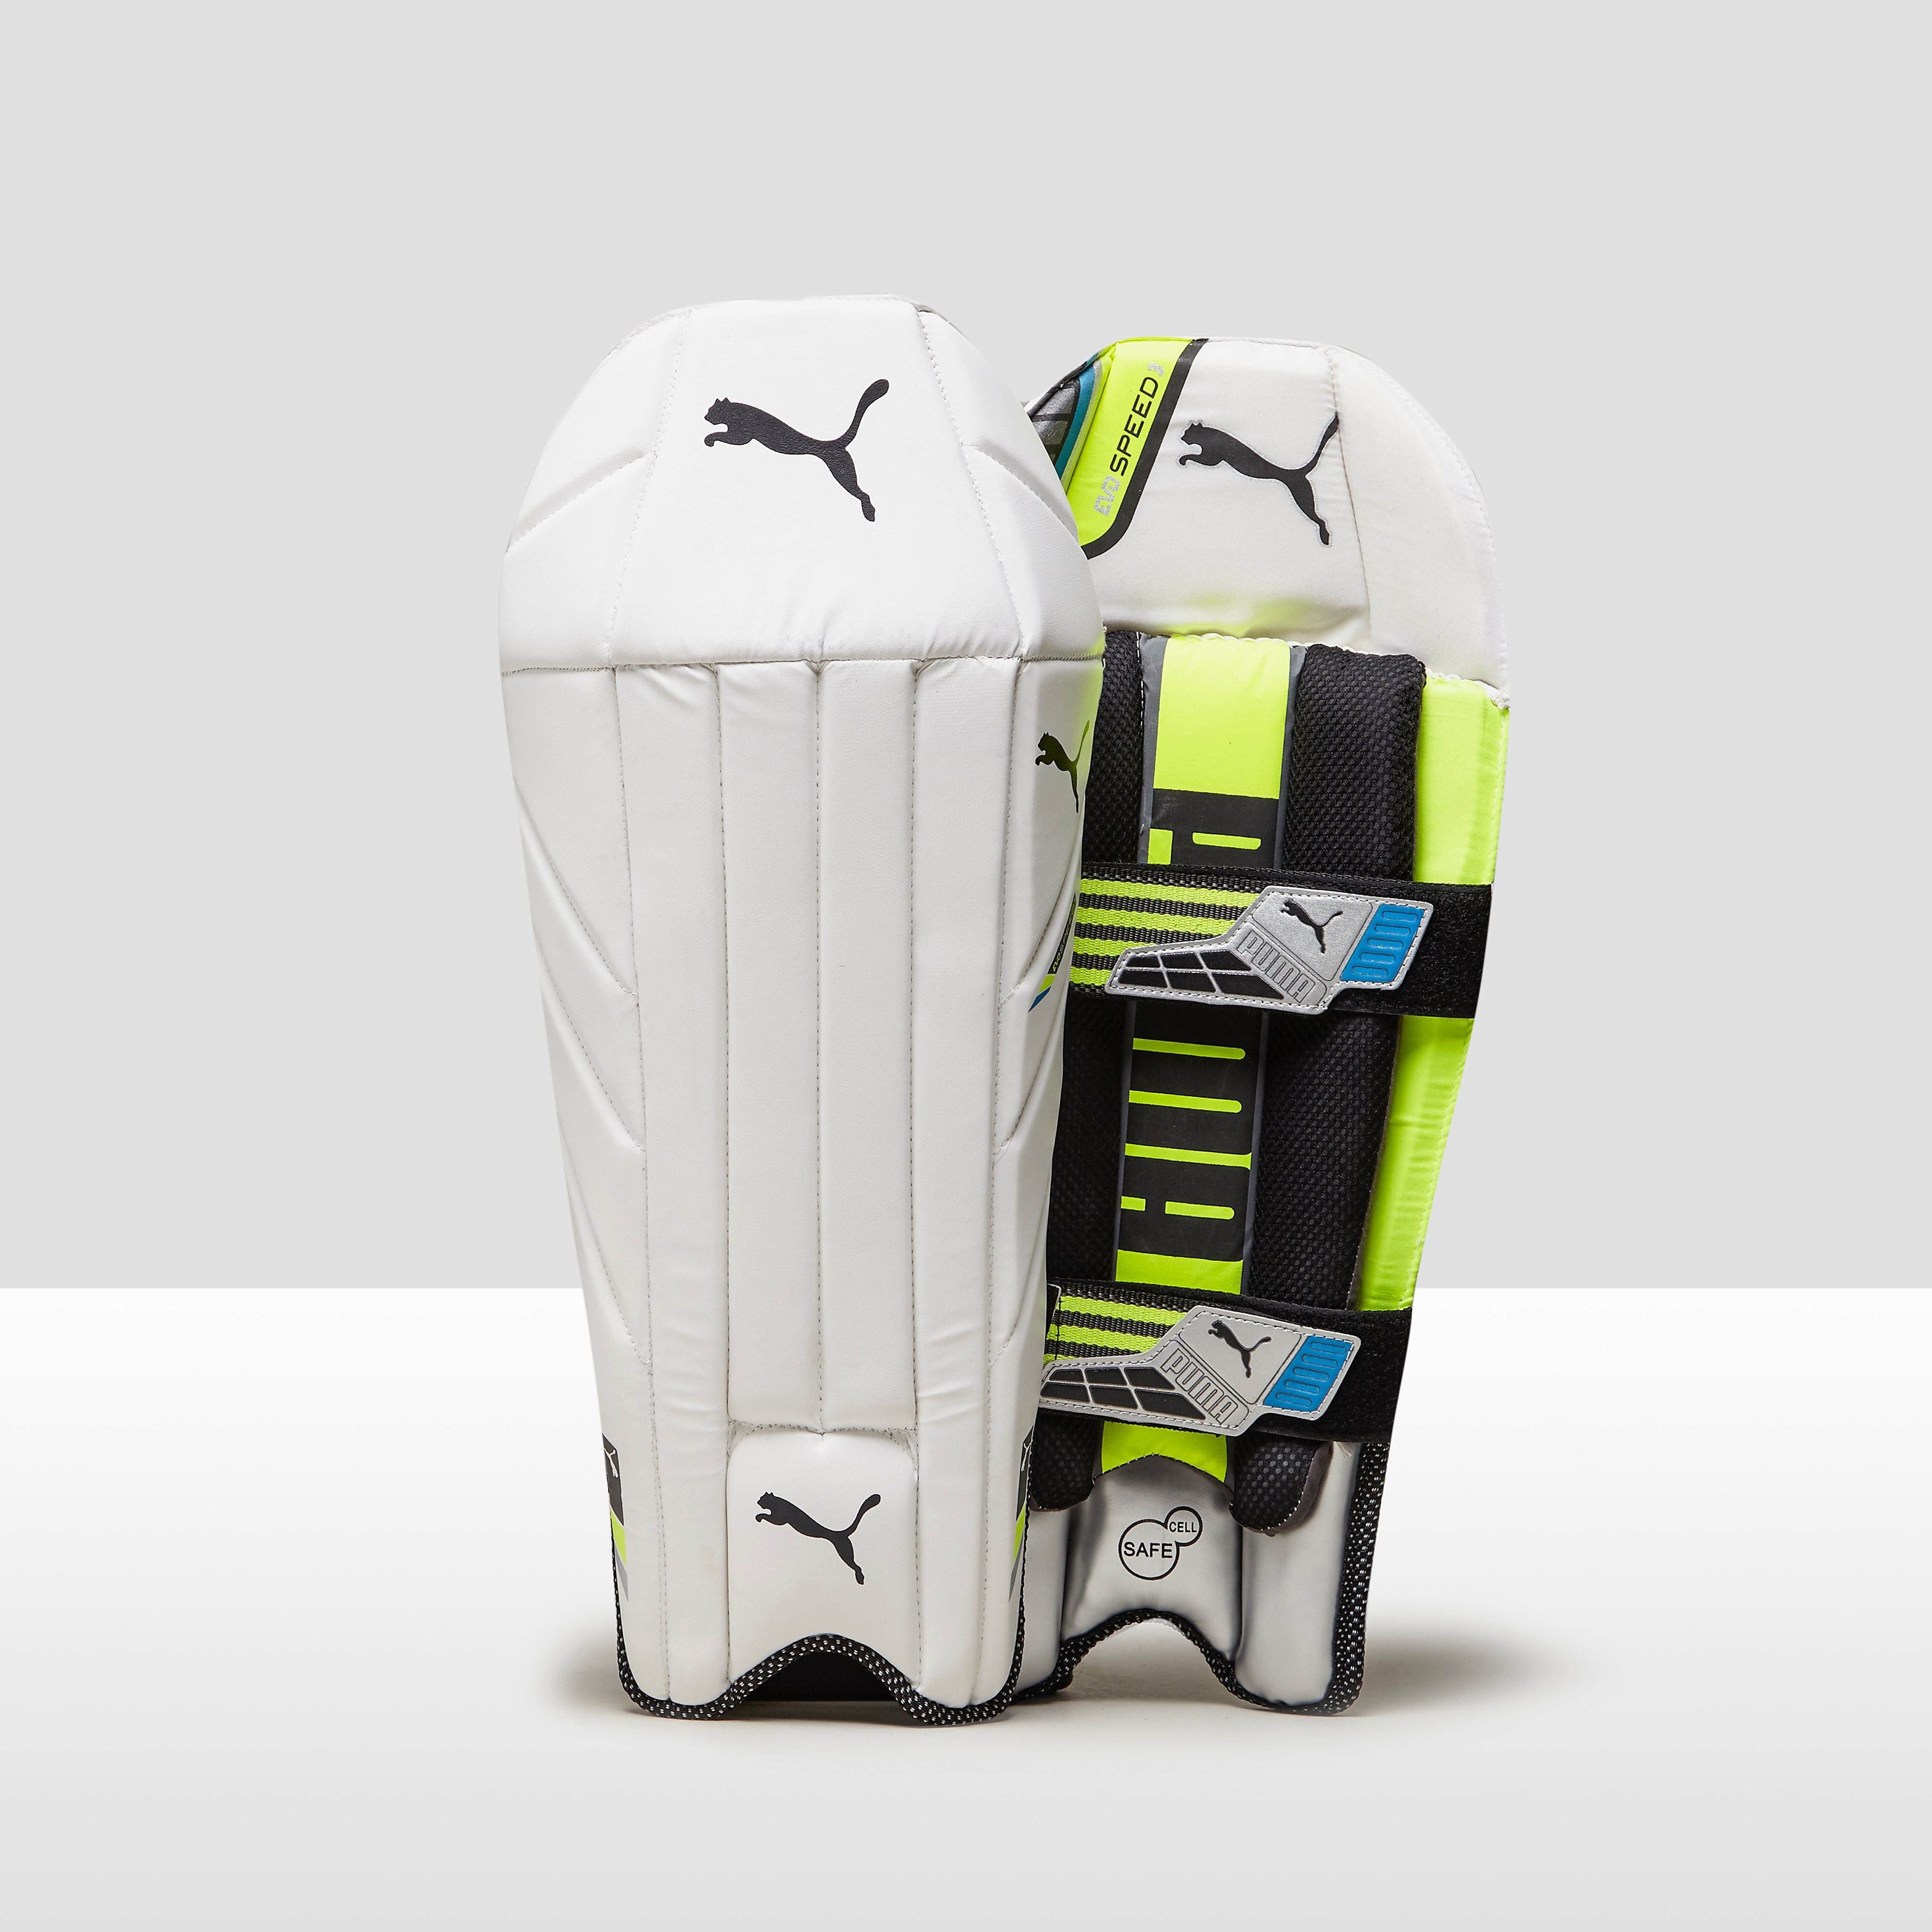 PUMA evoSpeed 3 wicket keeping pads